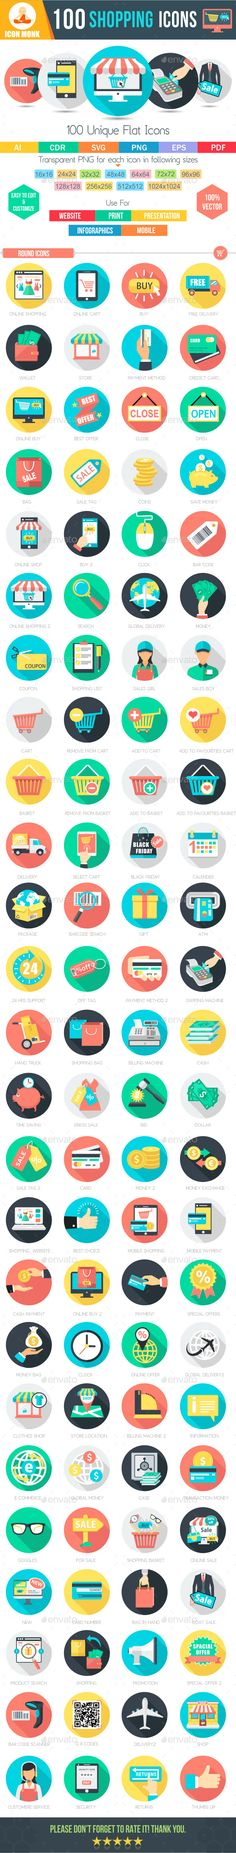 100 Shopping Flat Icons. Download here: http://graphicriver.net/item/100-shopping-flat-icons-/14780241?ref=ksioks